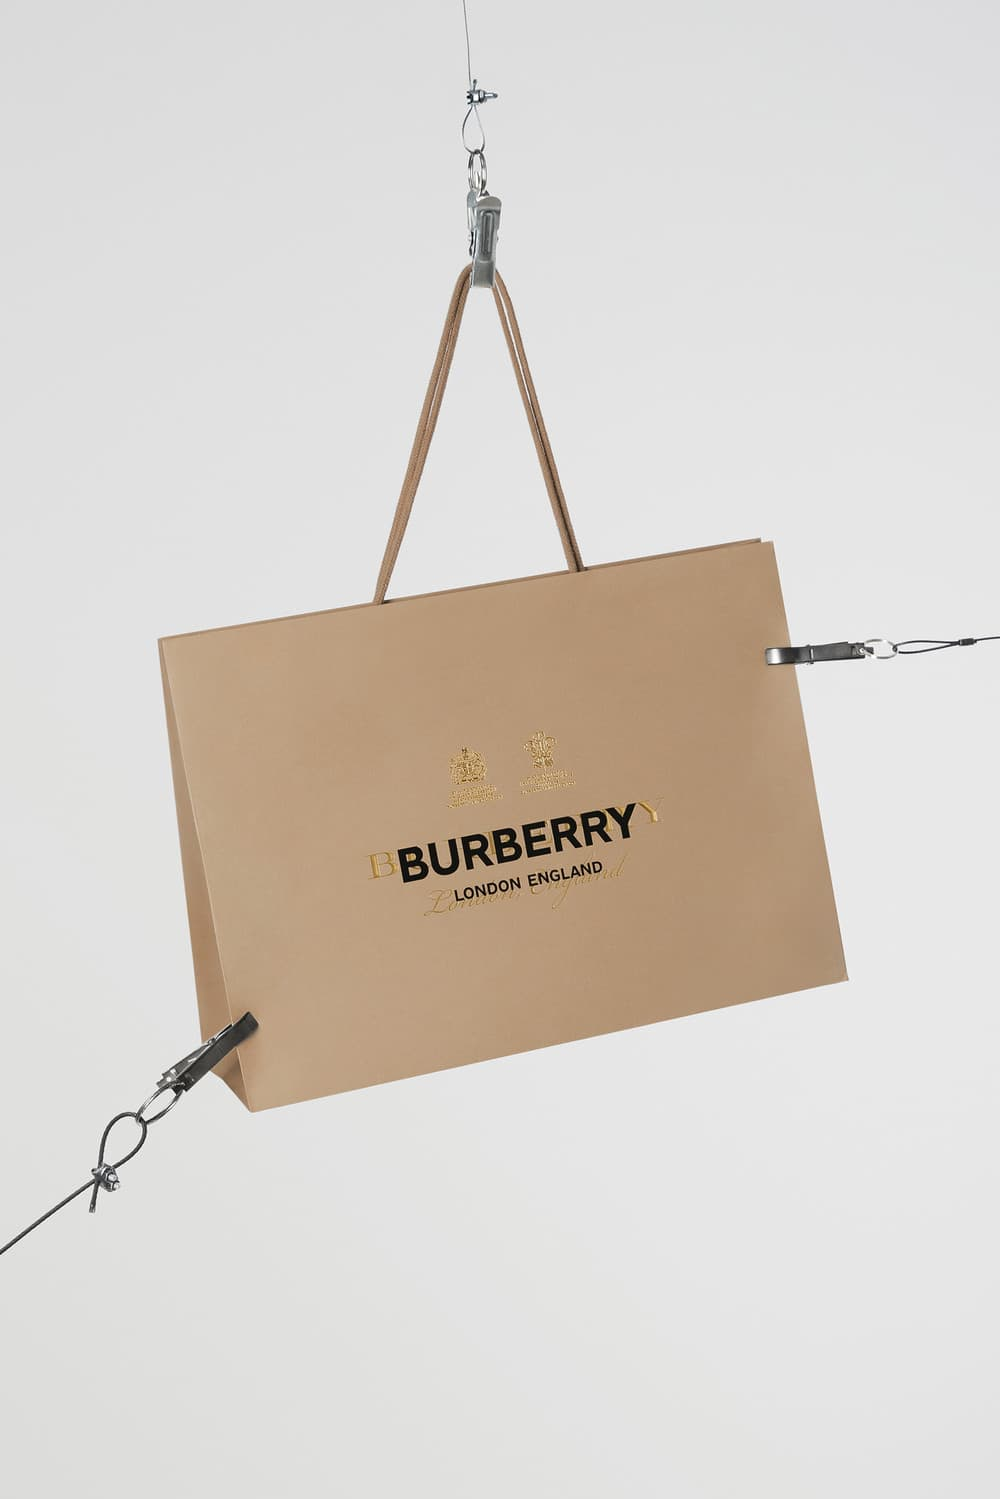 The first collection Burberry by Riccardo Tisci is coming out_acrimoniamagazine